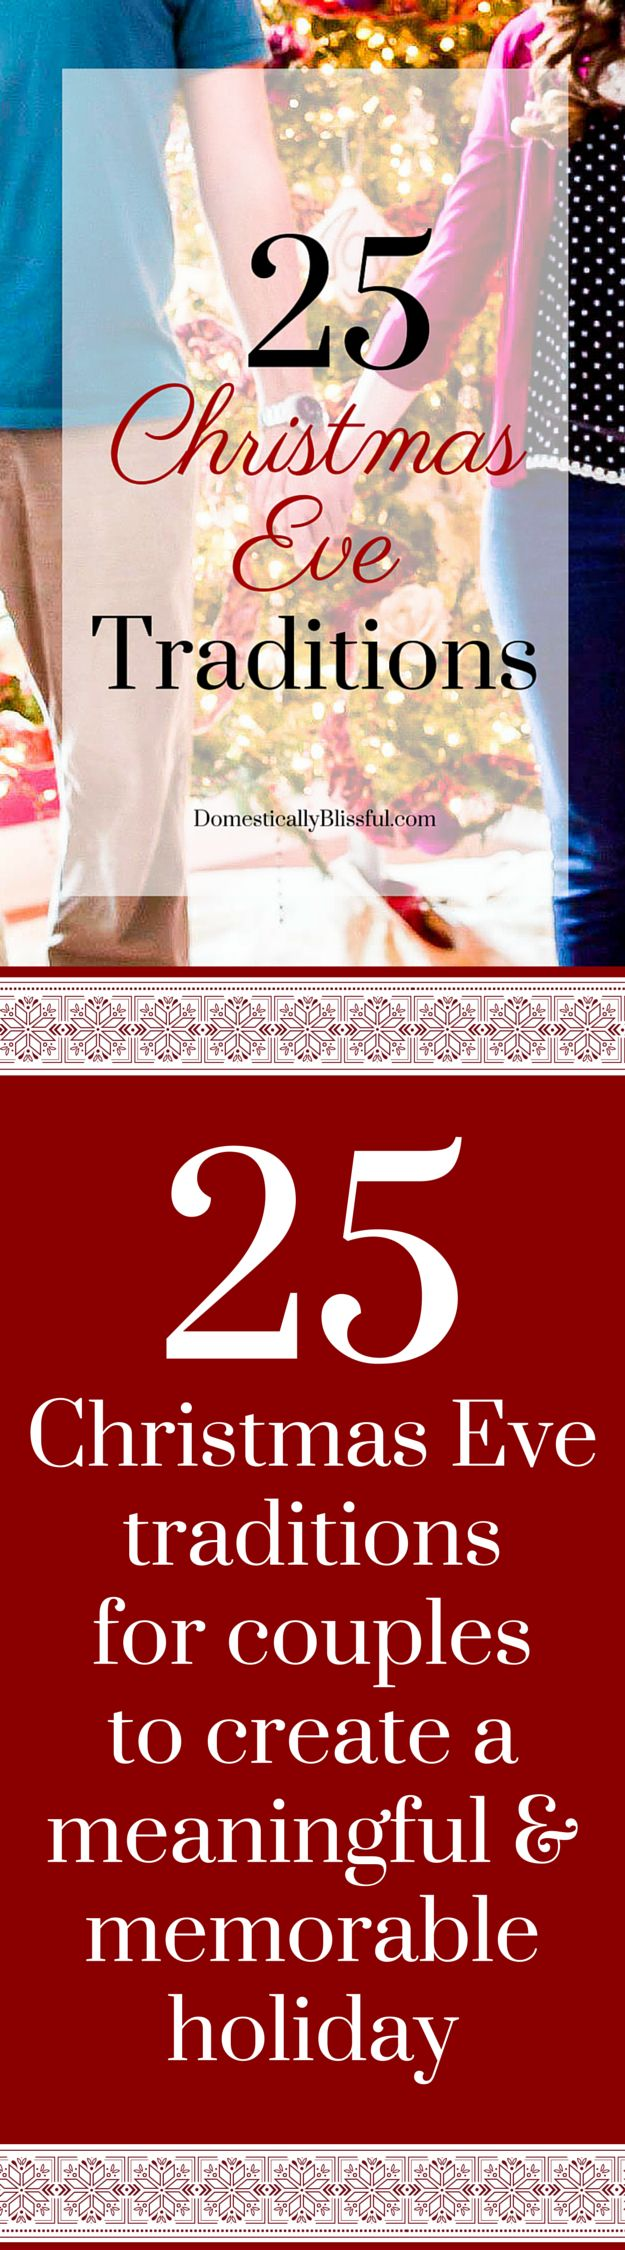 25 Christmas Eve traditions for couples to create a meaningful